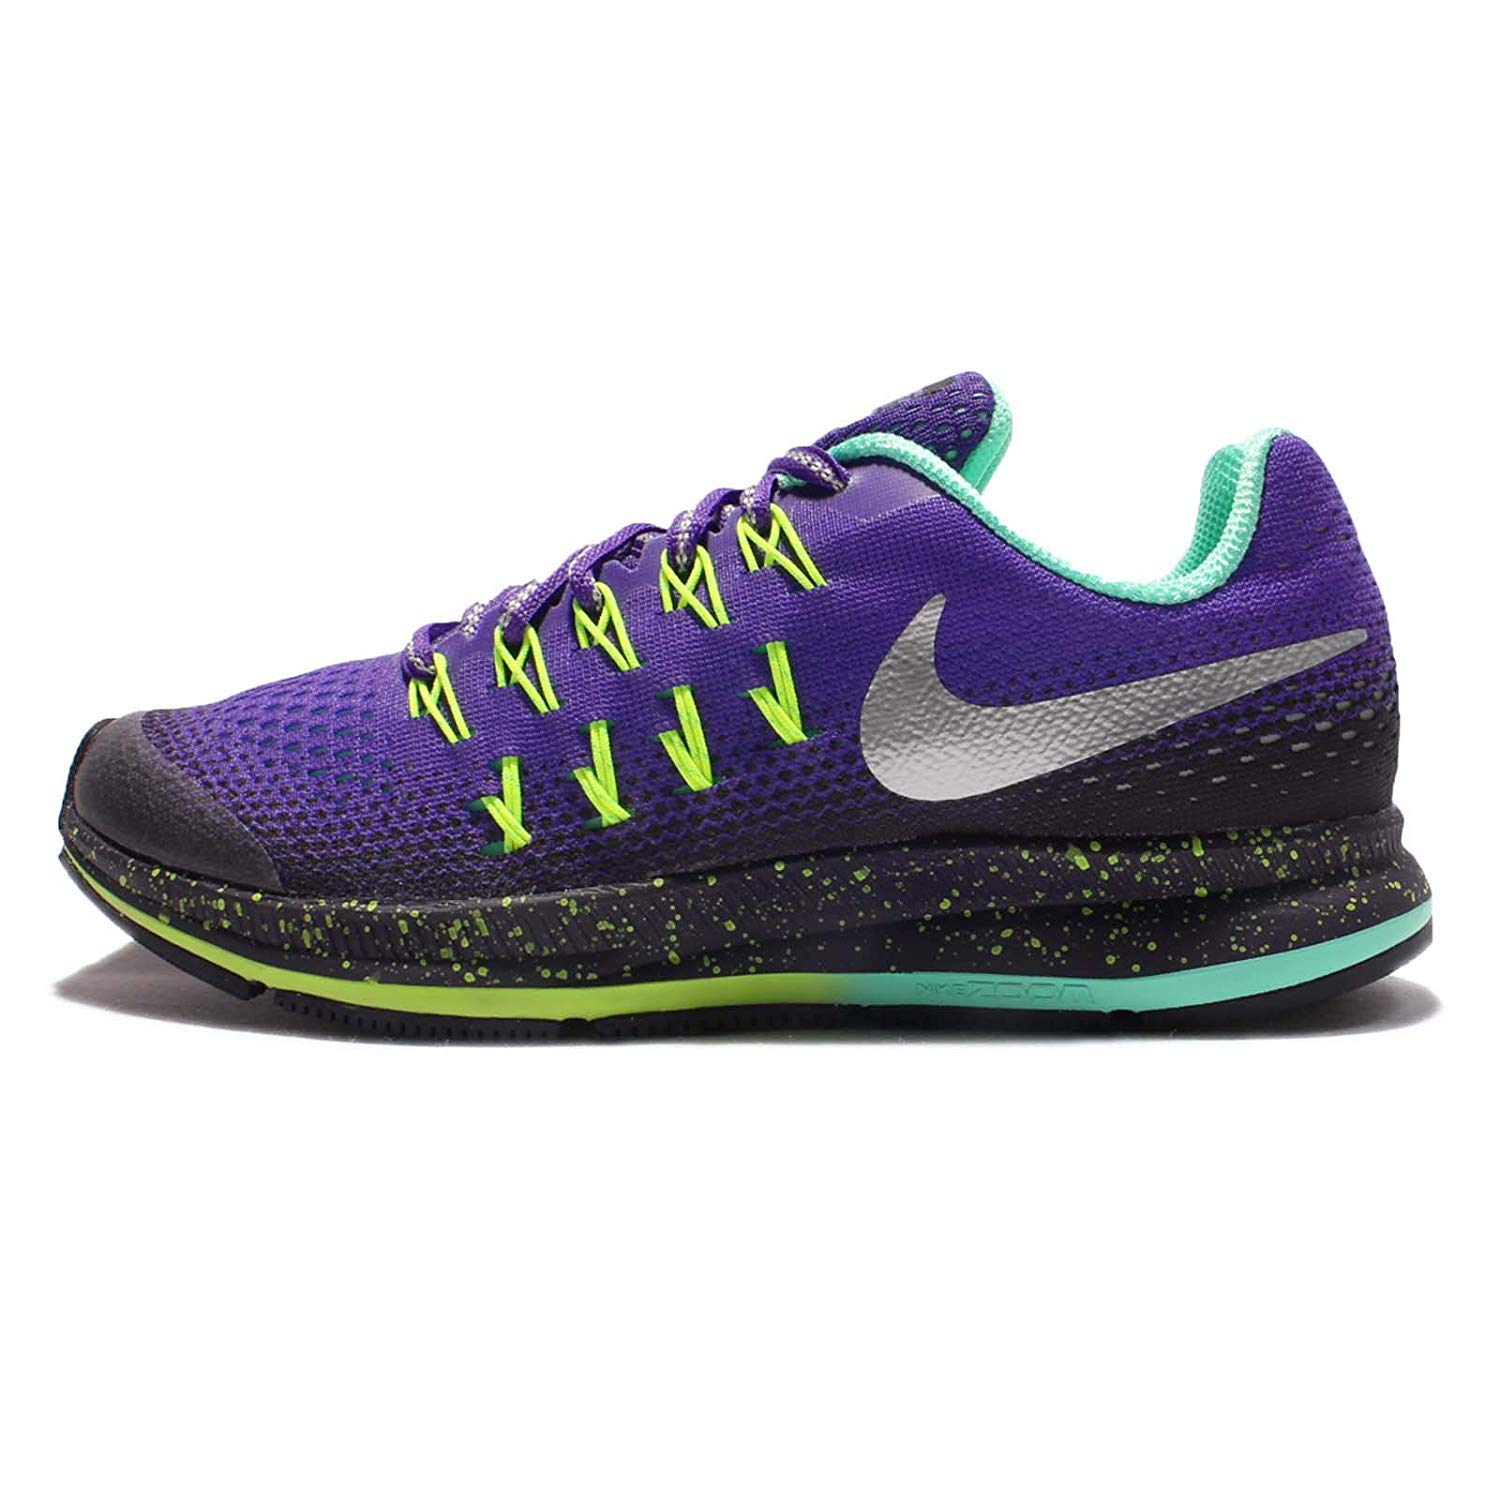 07c29789bd59 Amazon.com  NIKE Kid s Zoom Pegasus 33 Shield GS